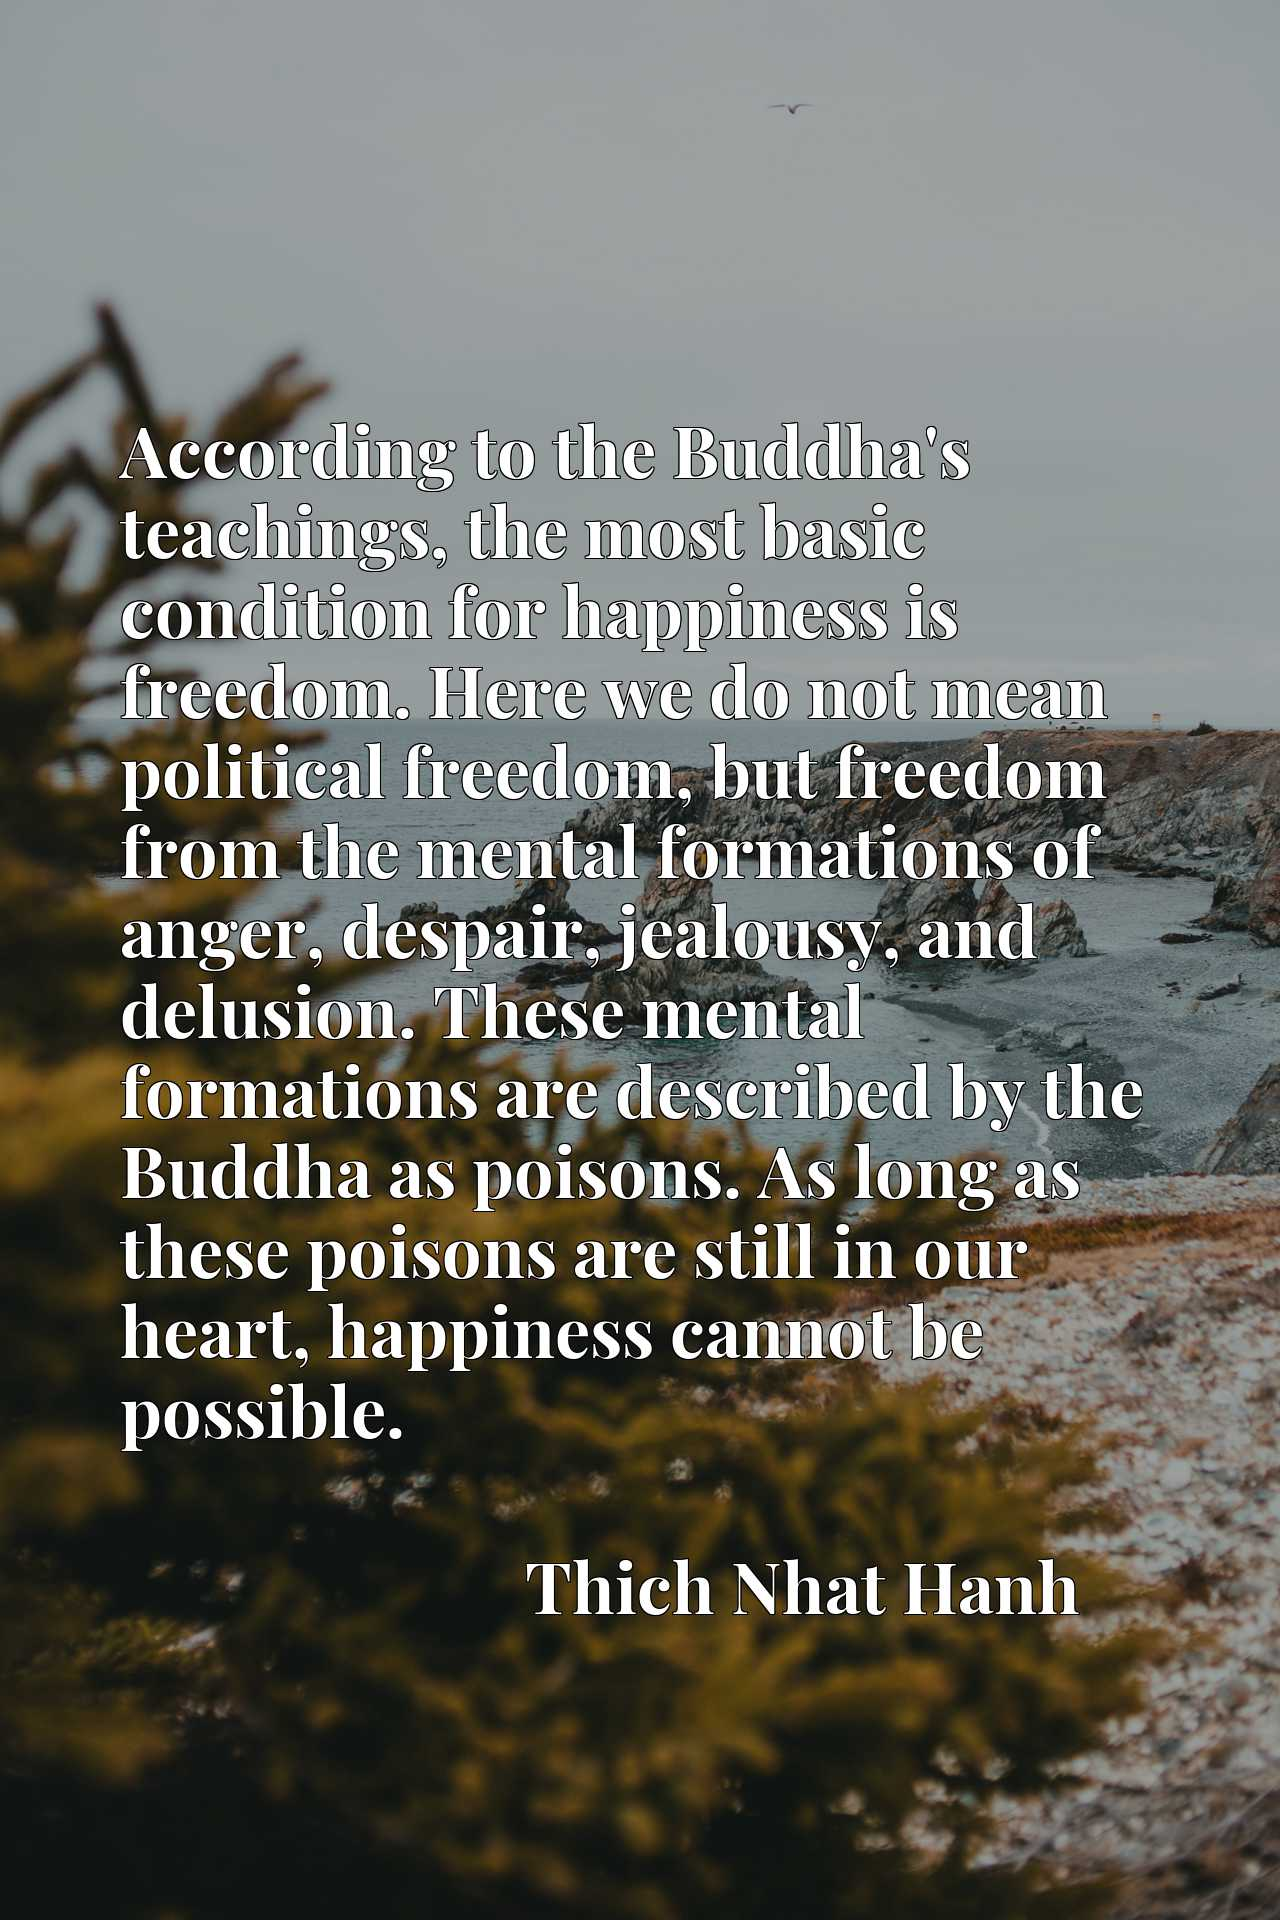 According to the Buddha's teachings, the most basic condition for happiness is freedom. Here we do not mean political freedom, but freedom from the mental formations of anger, despair, jealousy, and delusion. These mental formations are described by the Buddha as poisons. As long as these poisons are still in our heart, happiness cannot be possible.